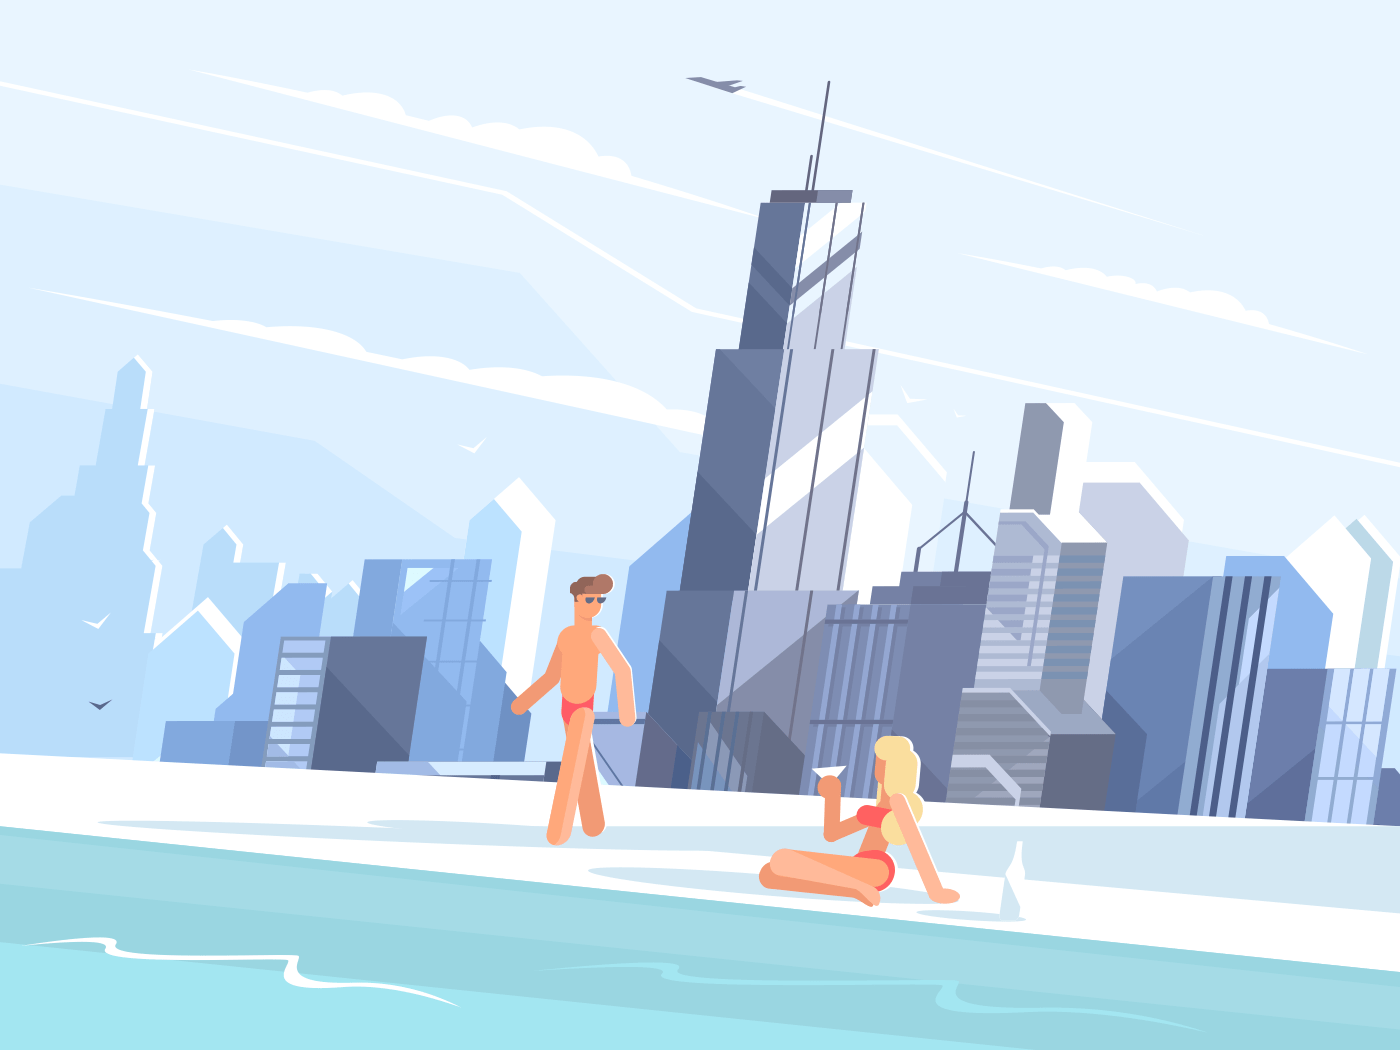 Swimming pool on roof of skyscraper illustration